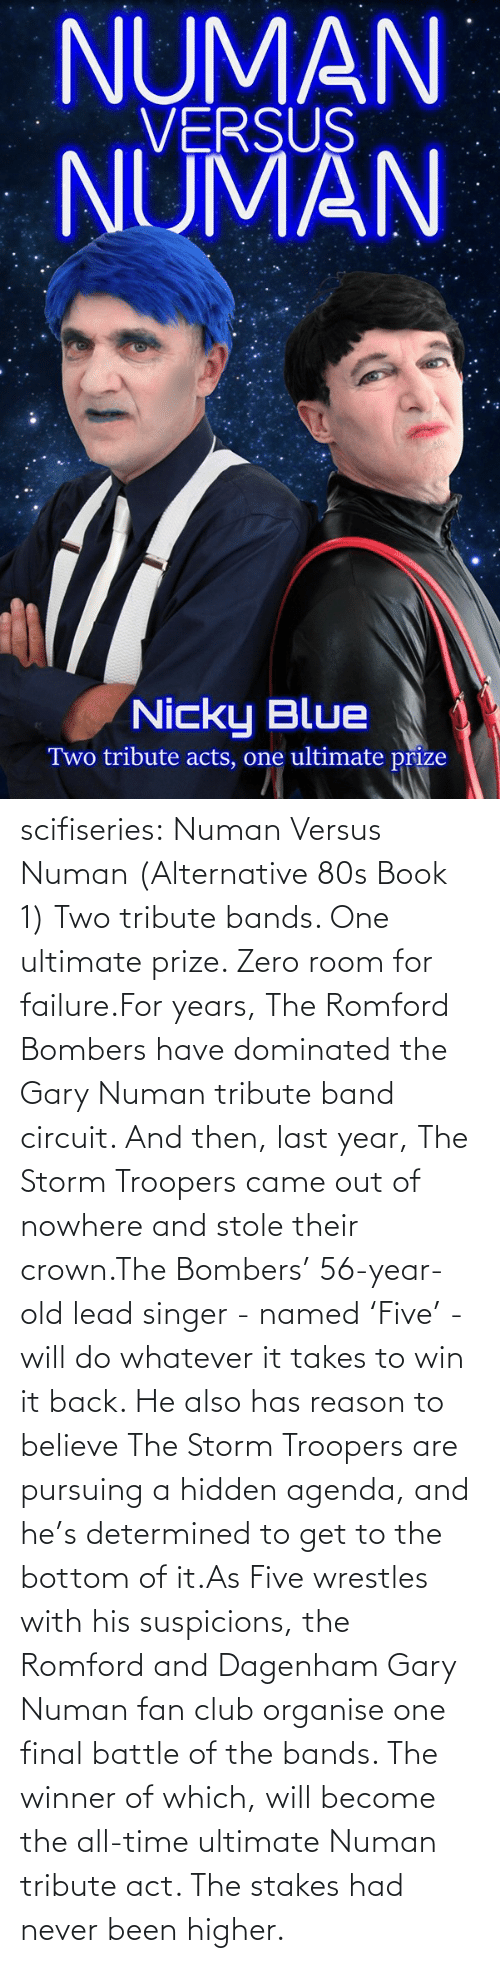 alternative: NUMAN  VERSUS  NUMAN  Nicky Blue  Two tribute acts, one ultimate prize scifiseries:  Numan Versus Numan (Alternative 80s Book 1) Two tribute bands. One ultimate prize. Zero room for failure.For  years, The Romford Bombers have dominated the Gary Numan tribute band  circuit. And then, last year, The Storm Troopers came out of nowhere and  stole their crown.The Bombers' 56-year-old lead singer - named  'Five' - will do whatever it takes to win it back. He also has reason to  believe The Storm Troopers are pursuing a hidden agenda, and he's  determined to get to the bottom of it.As Five wrestles with his  suspicions, the Romford and Dagenham Gary Numan fan club organise one  final battle of the bands. The winner of which, will become the all-time  ultimate Numan tribute act. The stakes had never been higher.